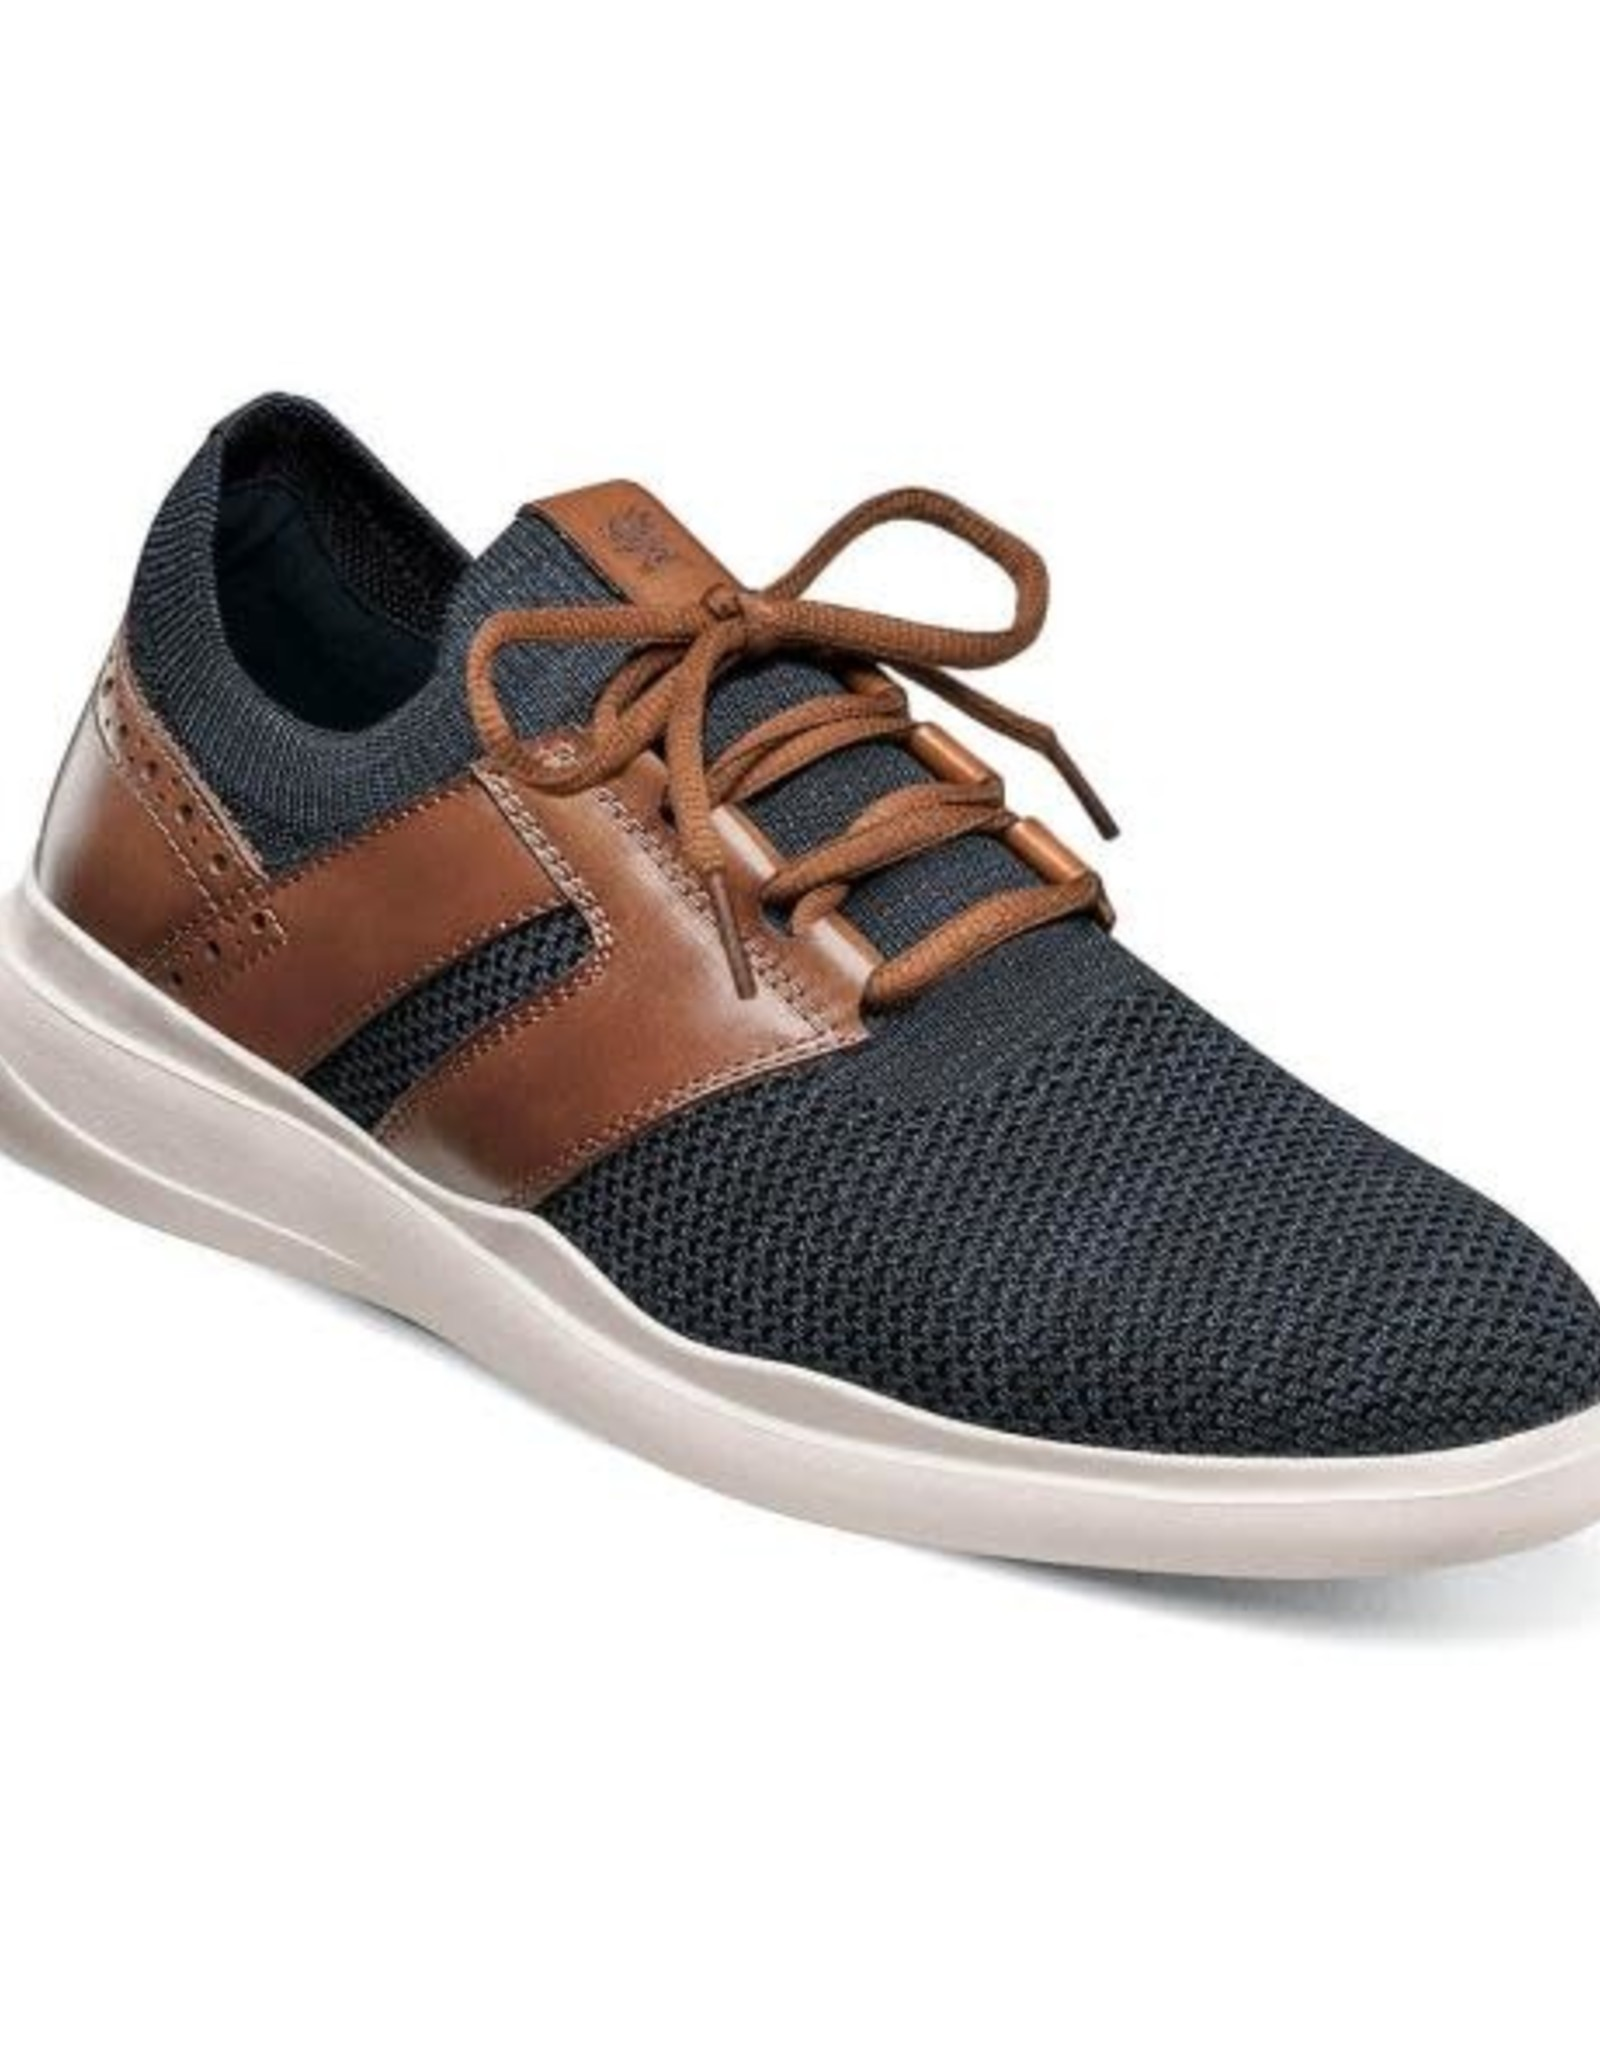 Stacy Adams Shoes Stacy Adams Moxley Knit 25435 Navy/Tan